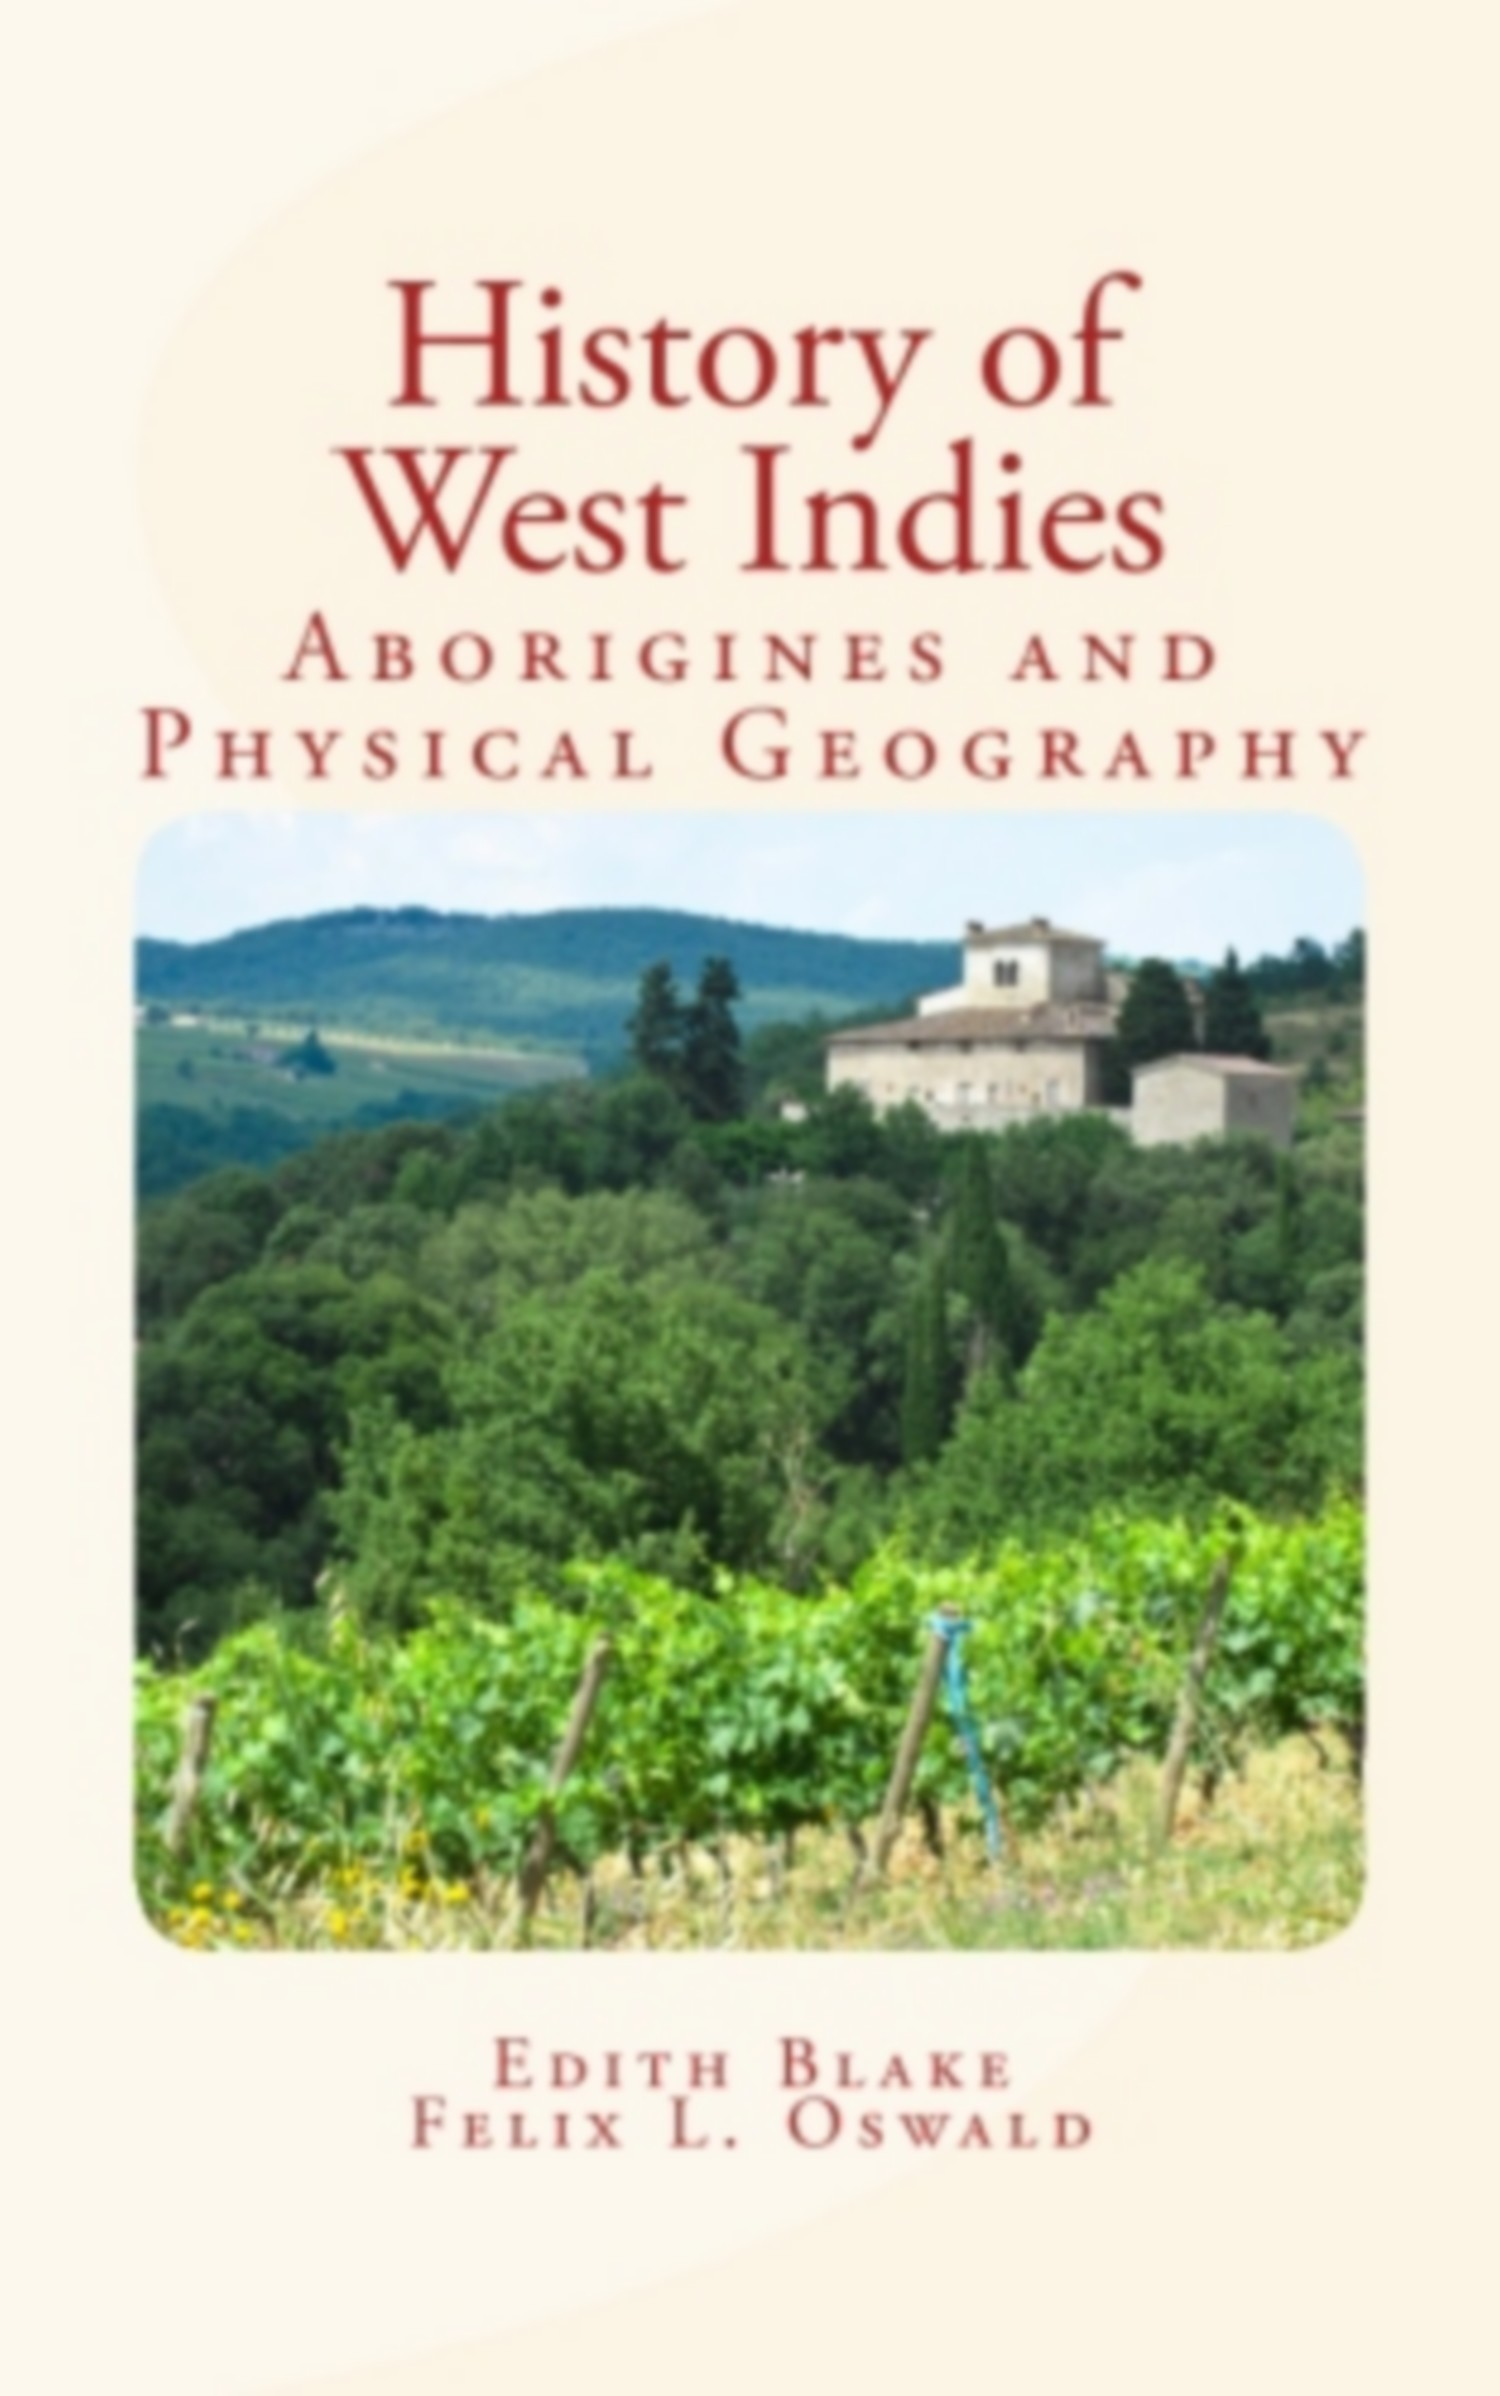 History of West Indies